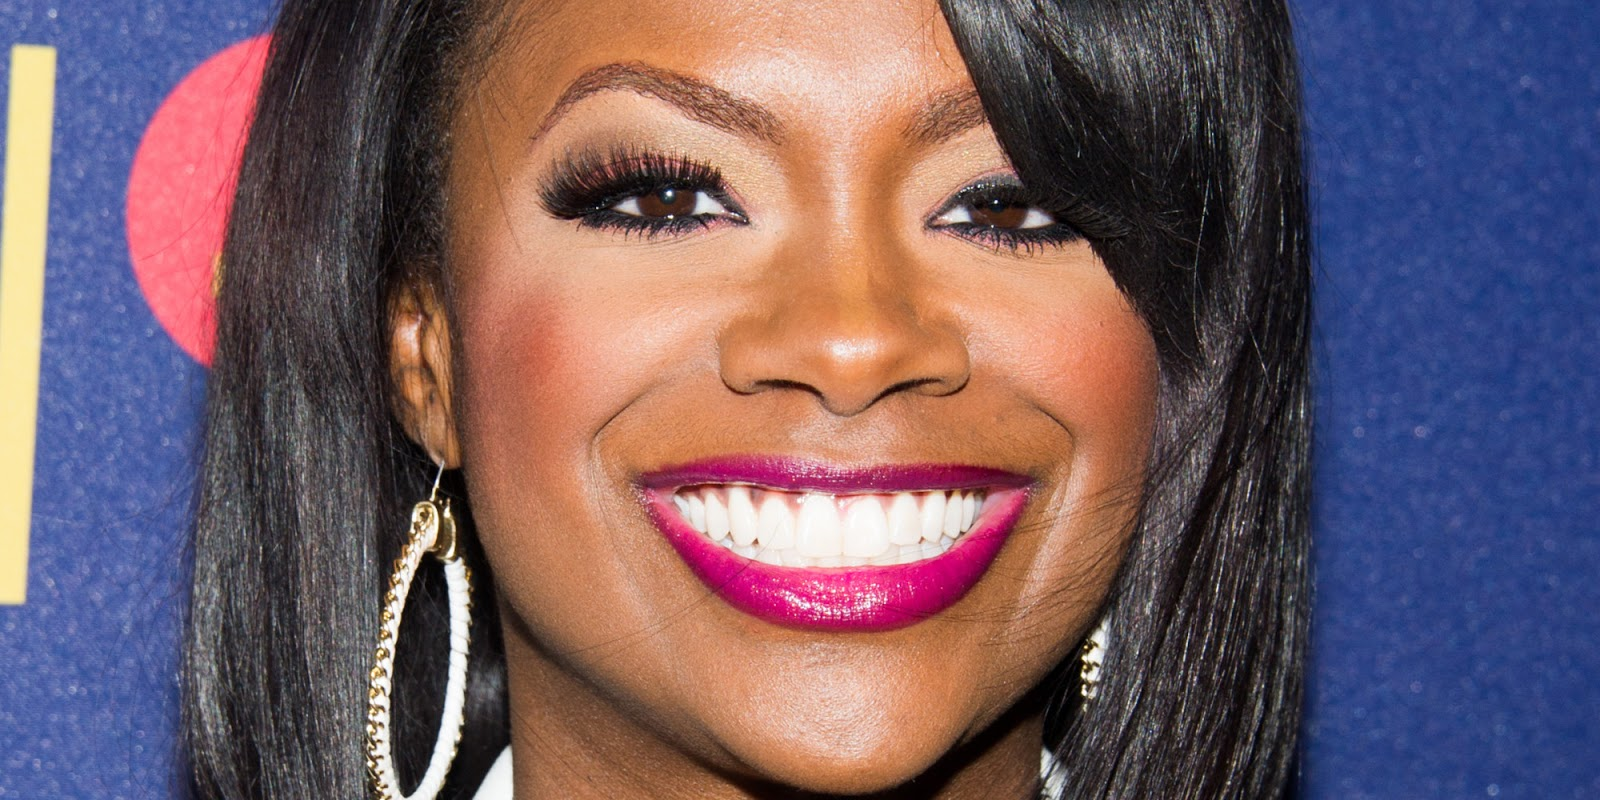 RHOA STAR KANDI BURRUSS GIVES BIRTH TO BABY BOY ~ Viral Voice